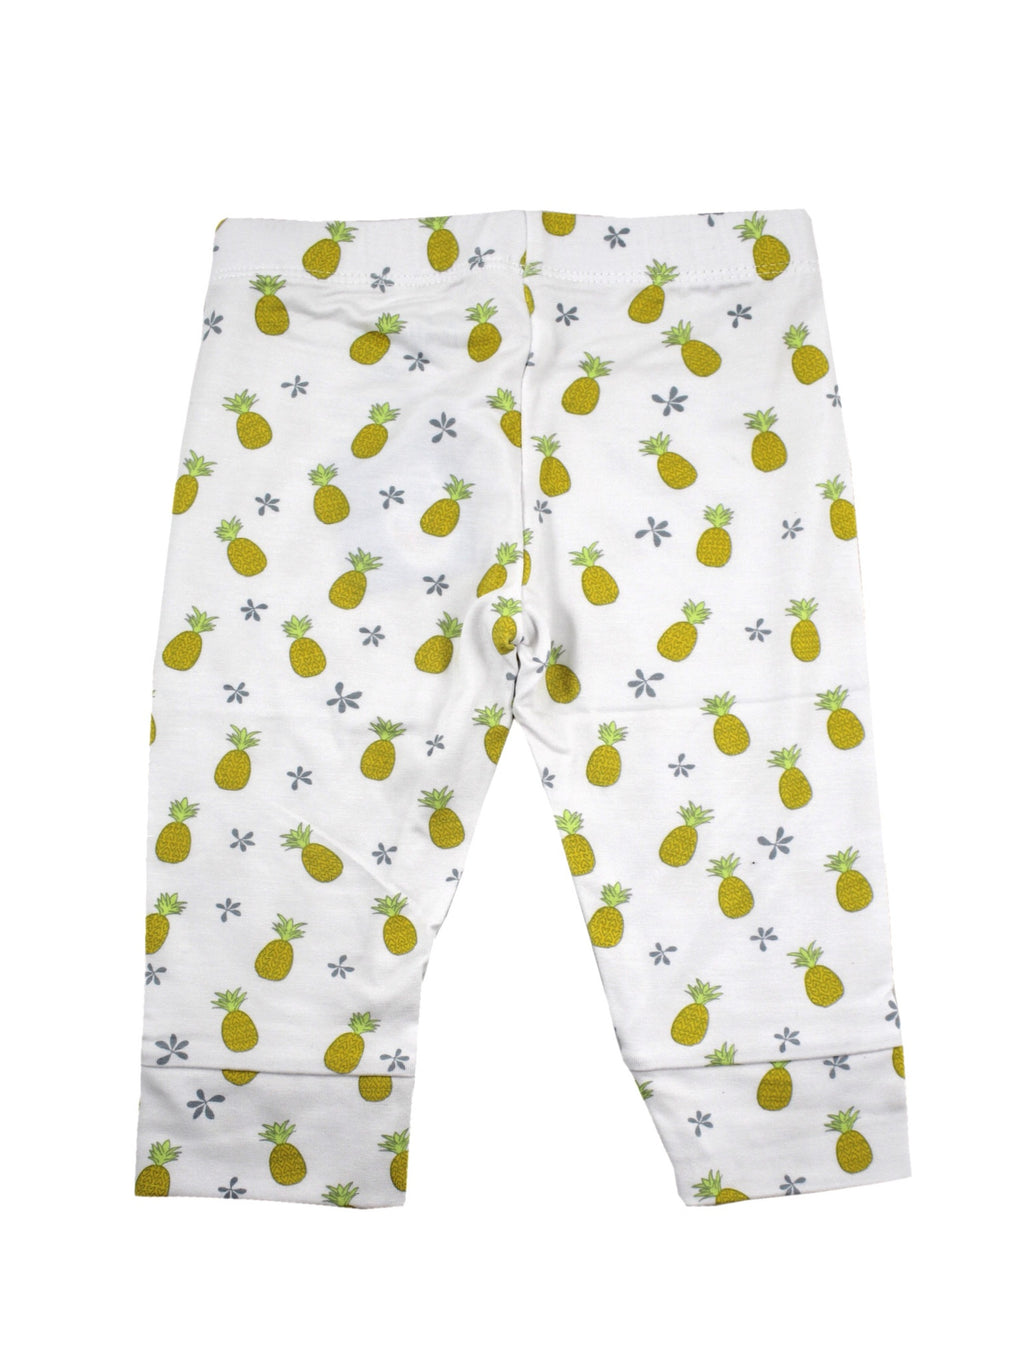 COCO MOON Leggings | Pineapple